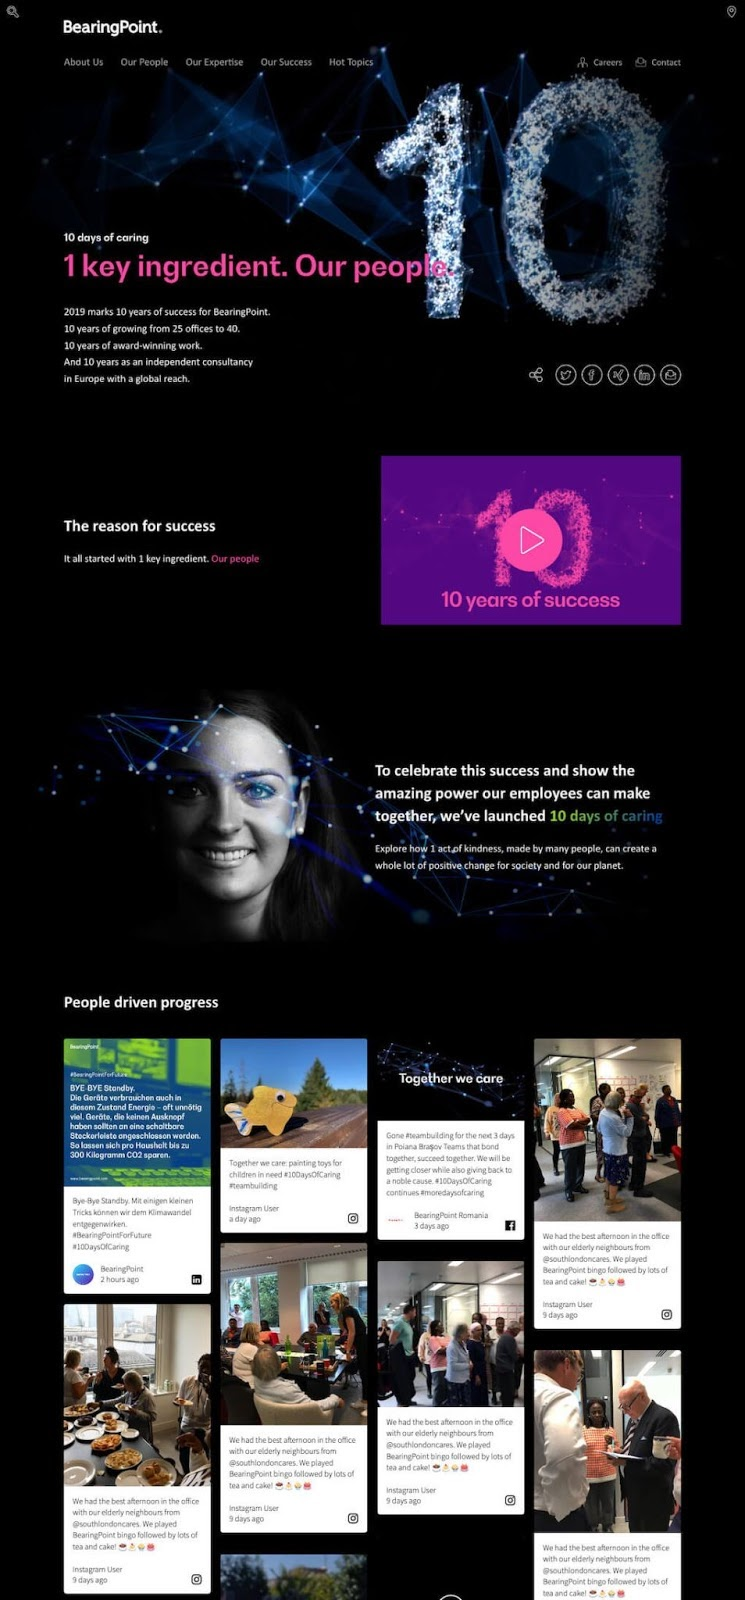 Screenshot of the BearingPoint 10 Days of Caring campaign microsite. It includes a promo image for the campaign, a video, and a social wall embedded at the bottom.